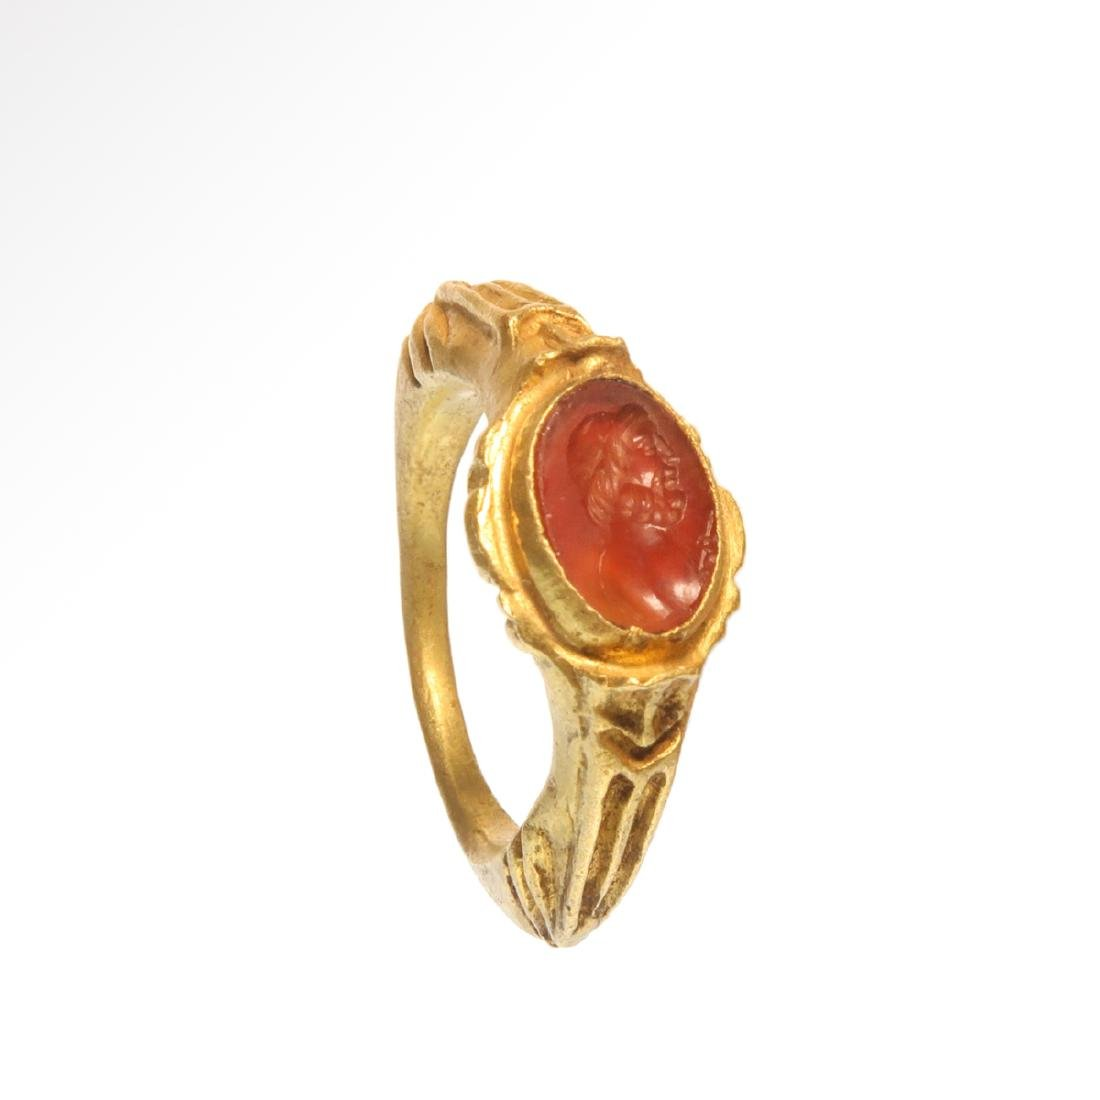 Roman Gold Ring with Cornelian Intaglio Engraved with